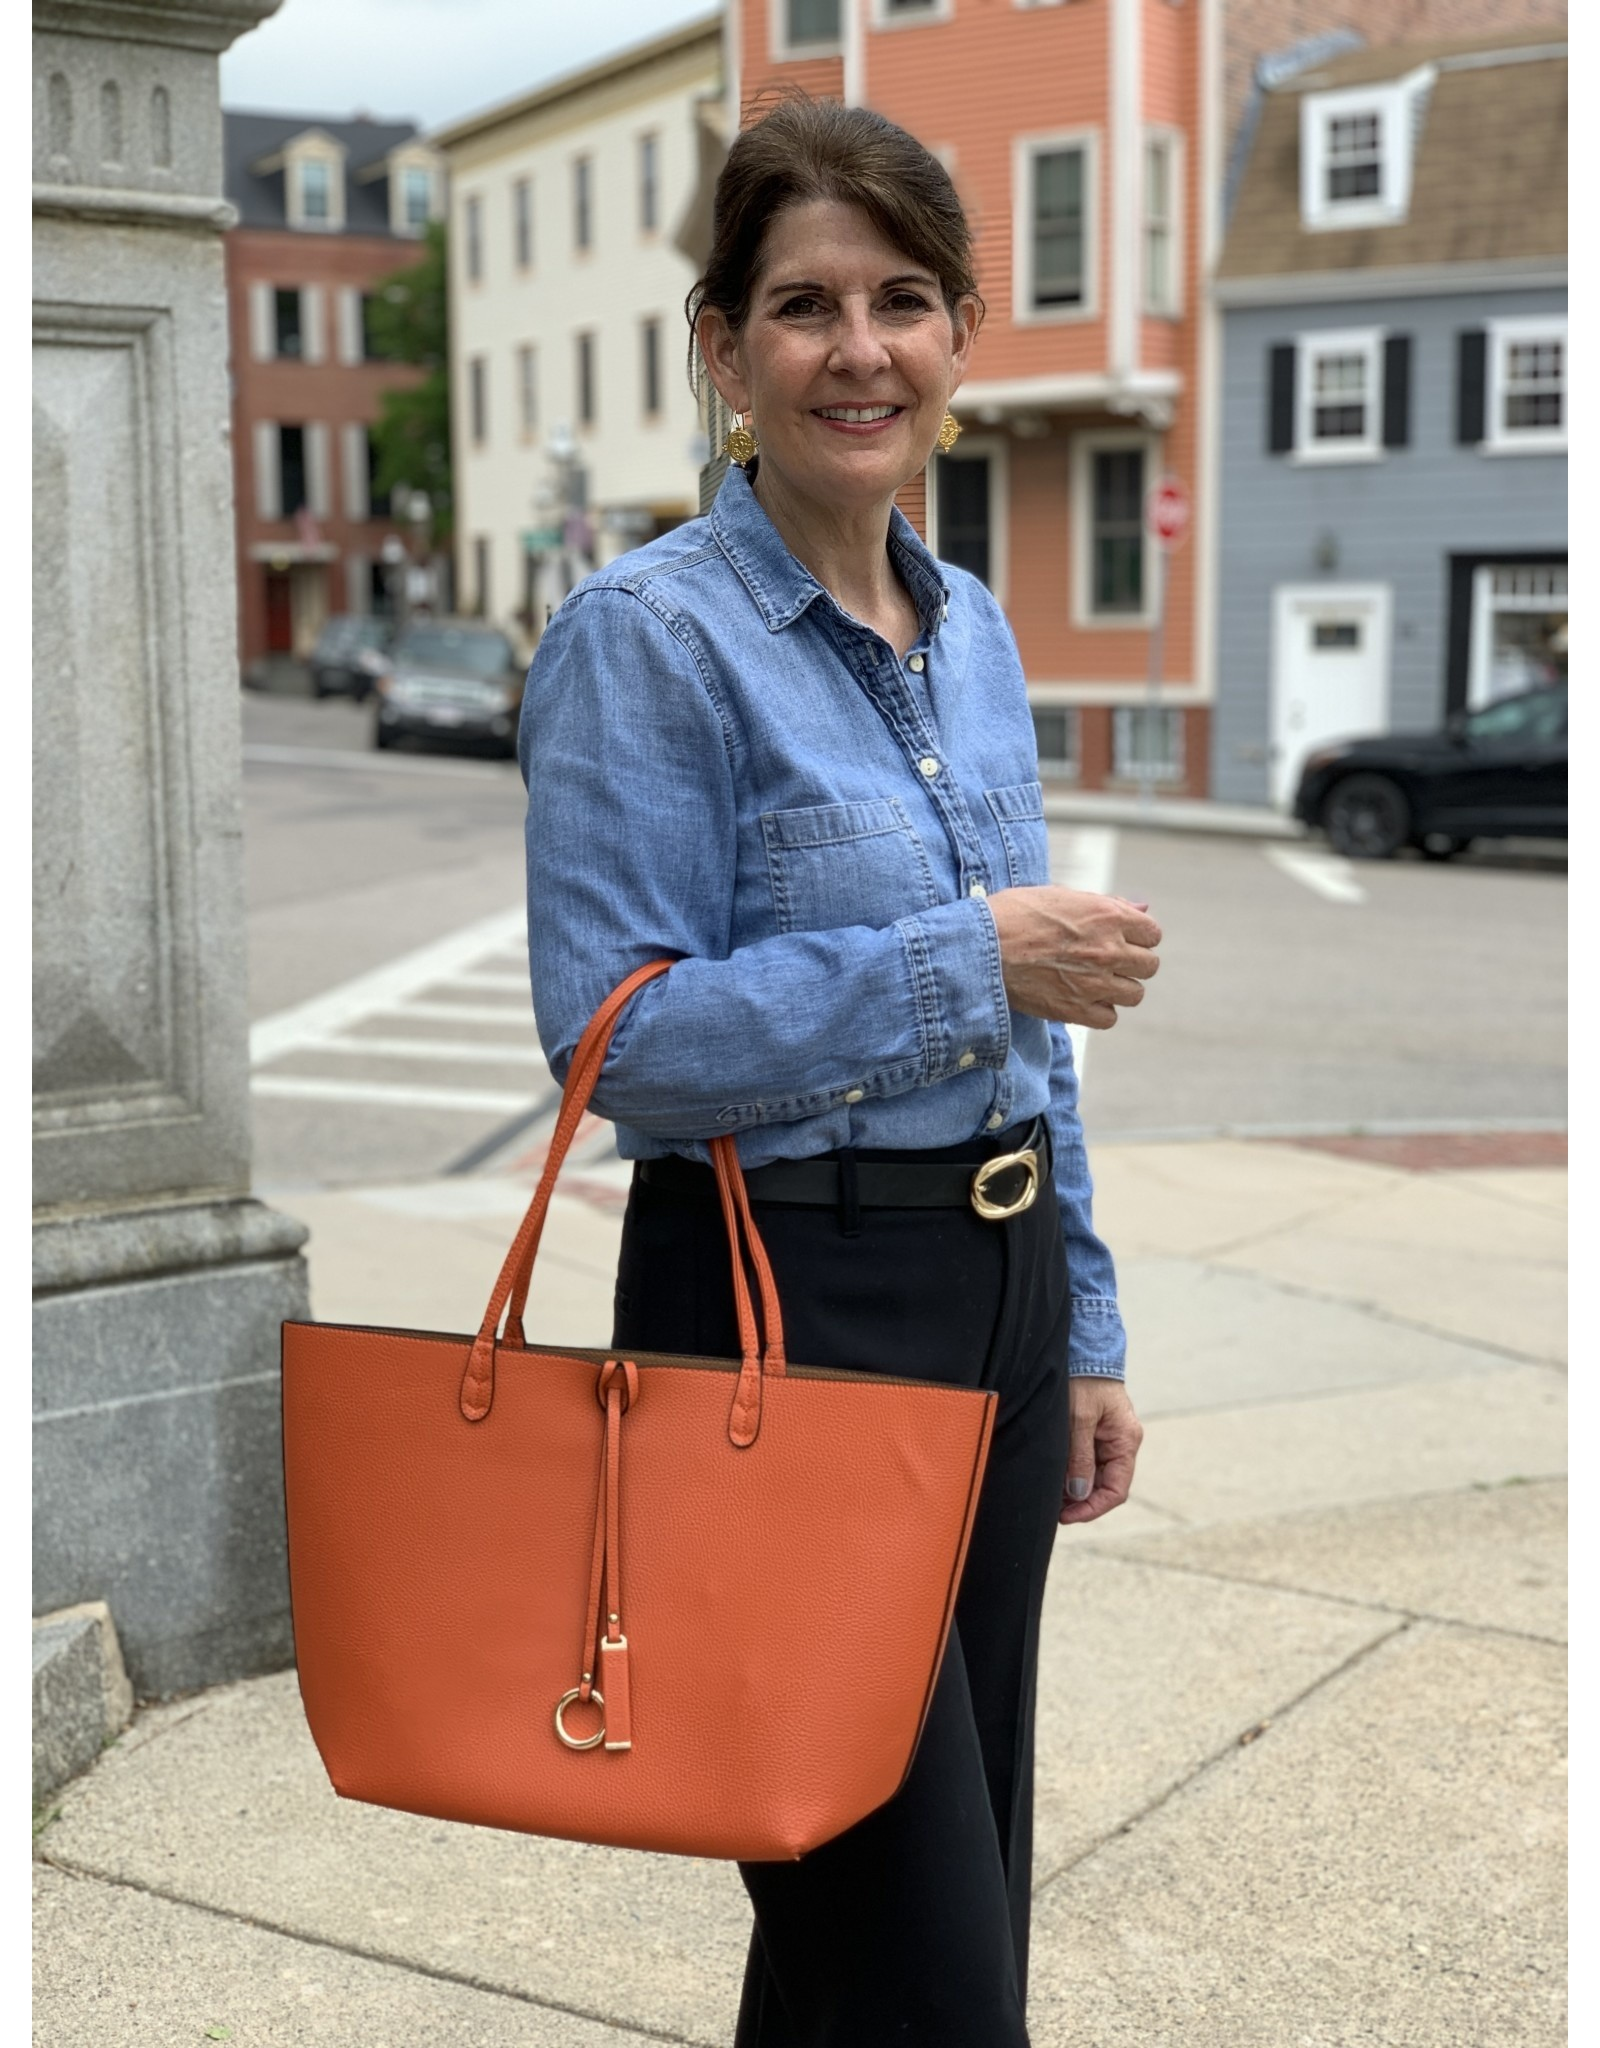 Reversible City Tote in Burnt Orange and Chestnut